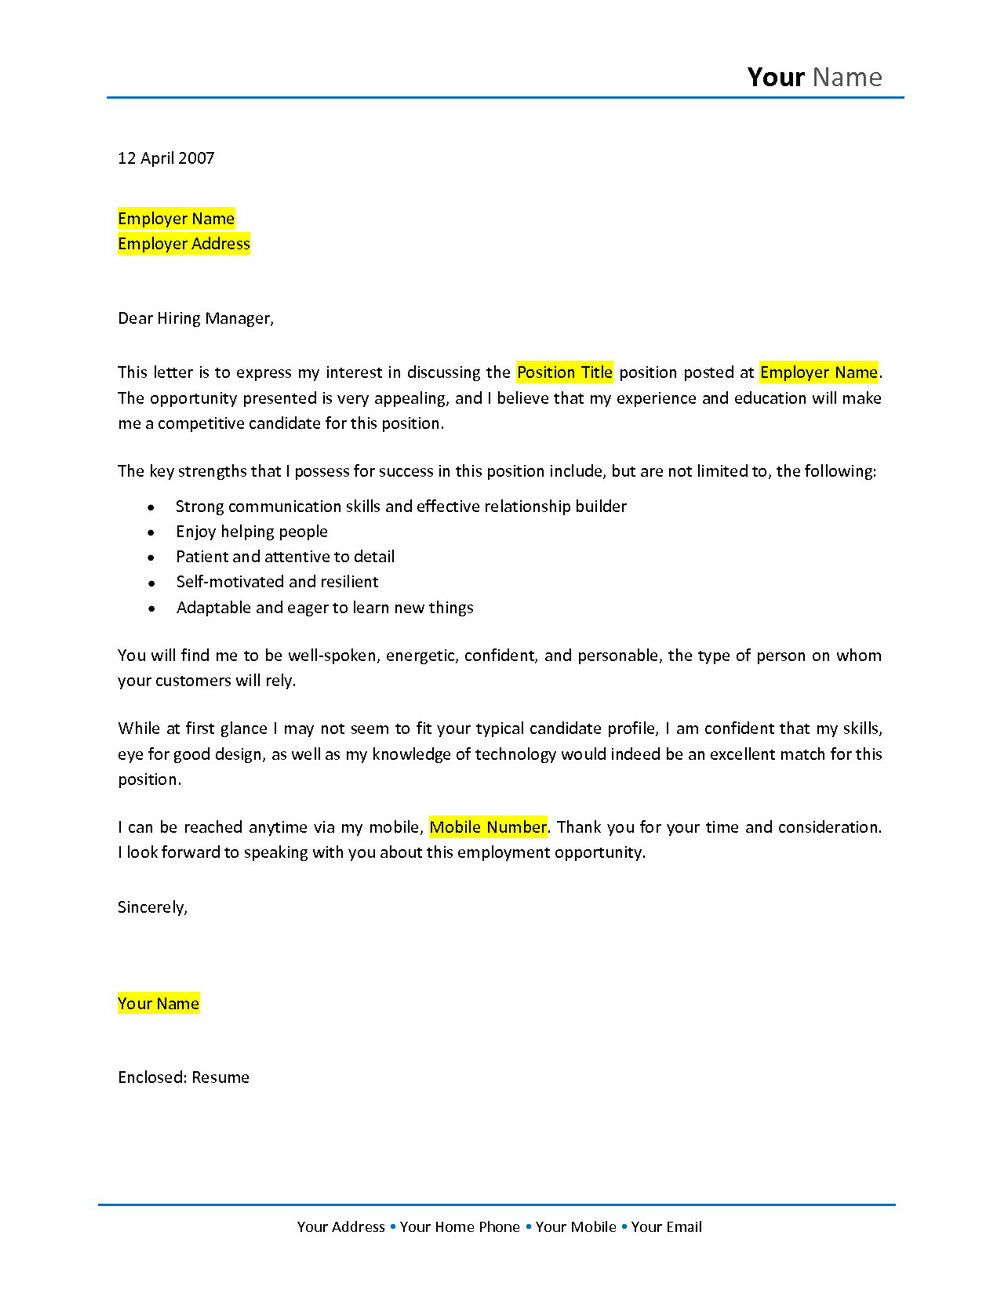 Free Cover Letter Templates For Career Change